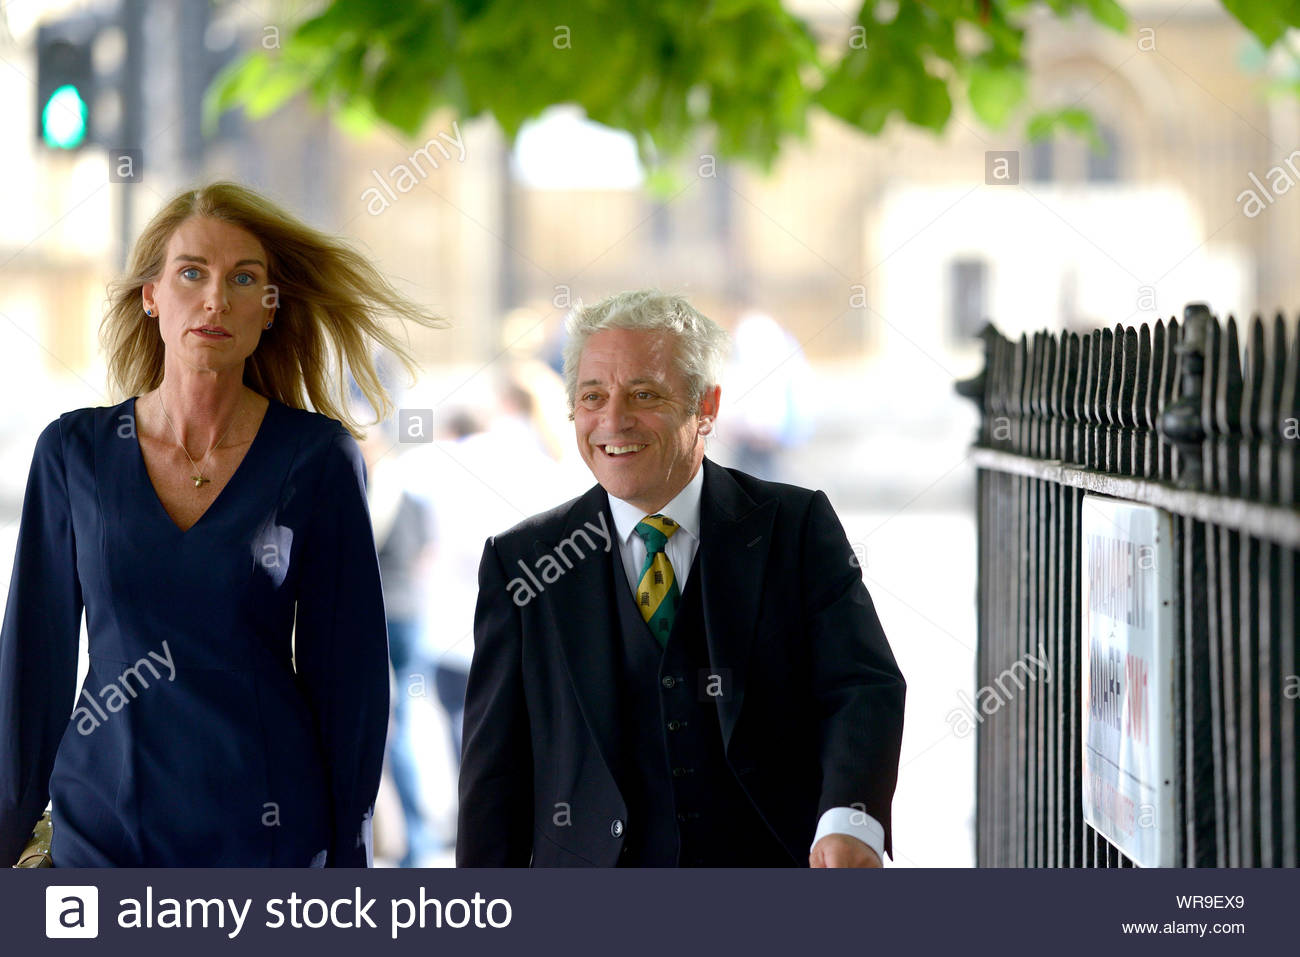 London, UK. 10th Sep, 2019. Speaker of the House of Commons, John Bercow, walks to Westminster Abbey with his wife Sally the morning after announcing that he will step down as Speaker either at the end of October or the next general election. They were attending a memorial service for Lord Paddy Ashdown. Credit: PjrFoto/Alamy Live News Stock Photo